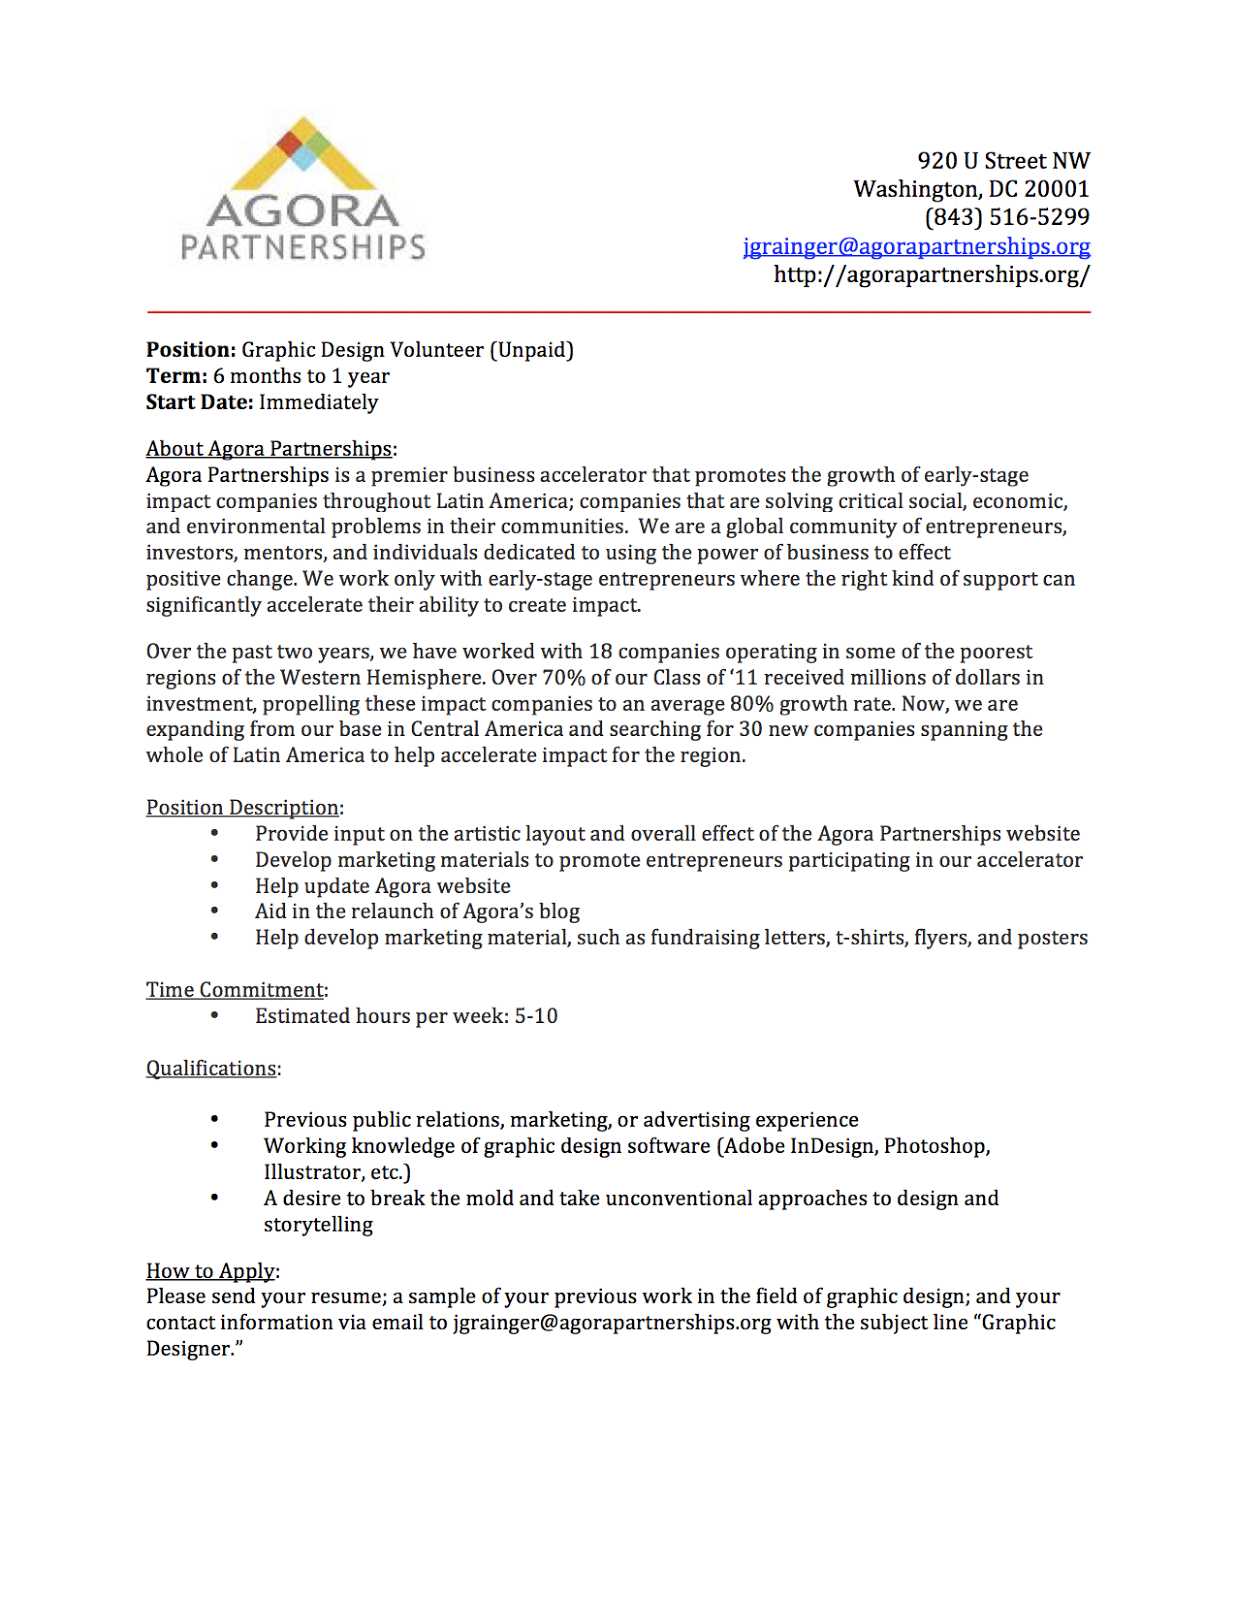 Cover letter of graphic design sample